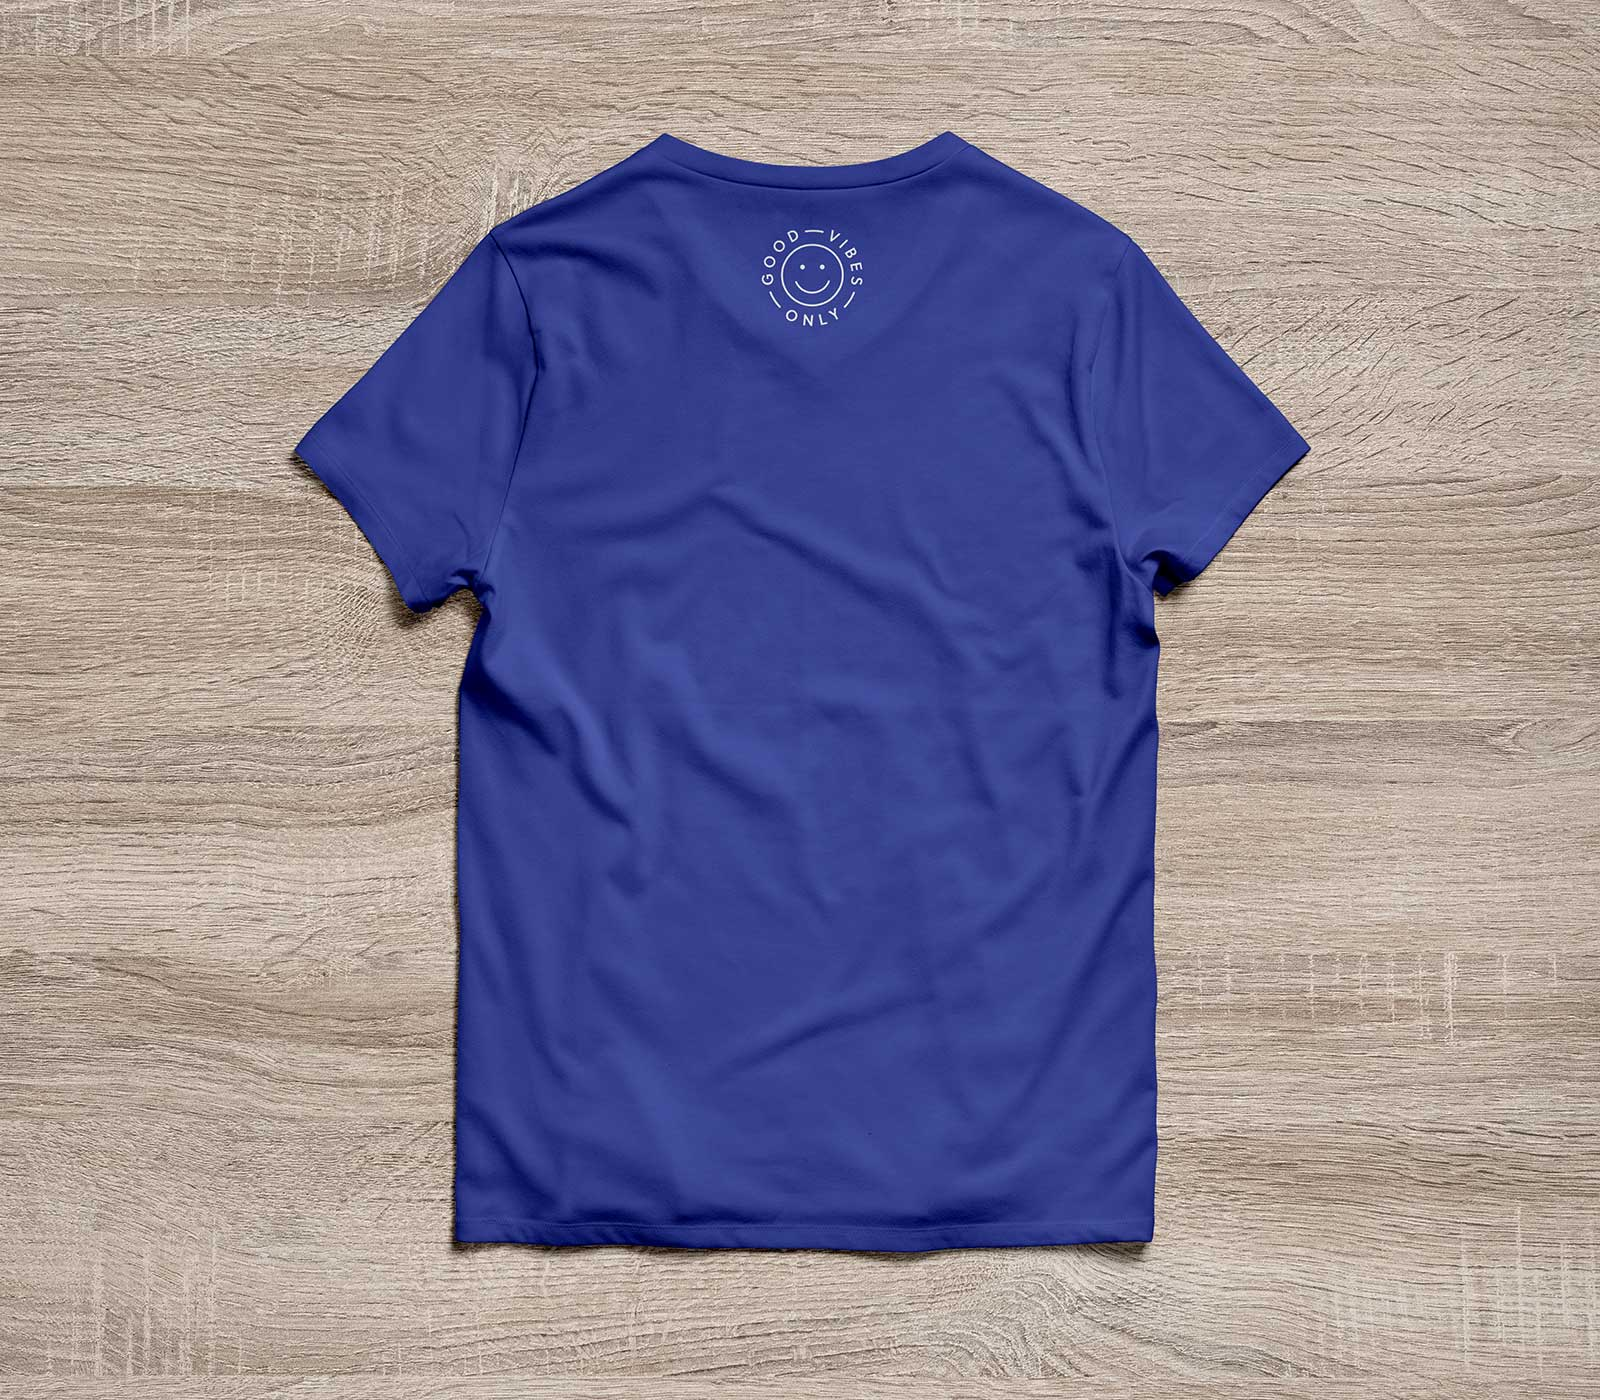 Free-Half-Sleeves-V-Neck-T-Shirt-Mockup-PSD-2